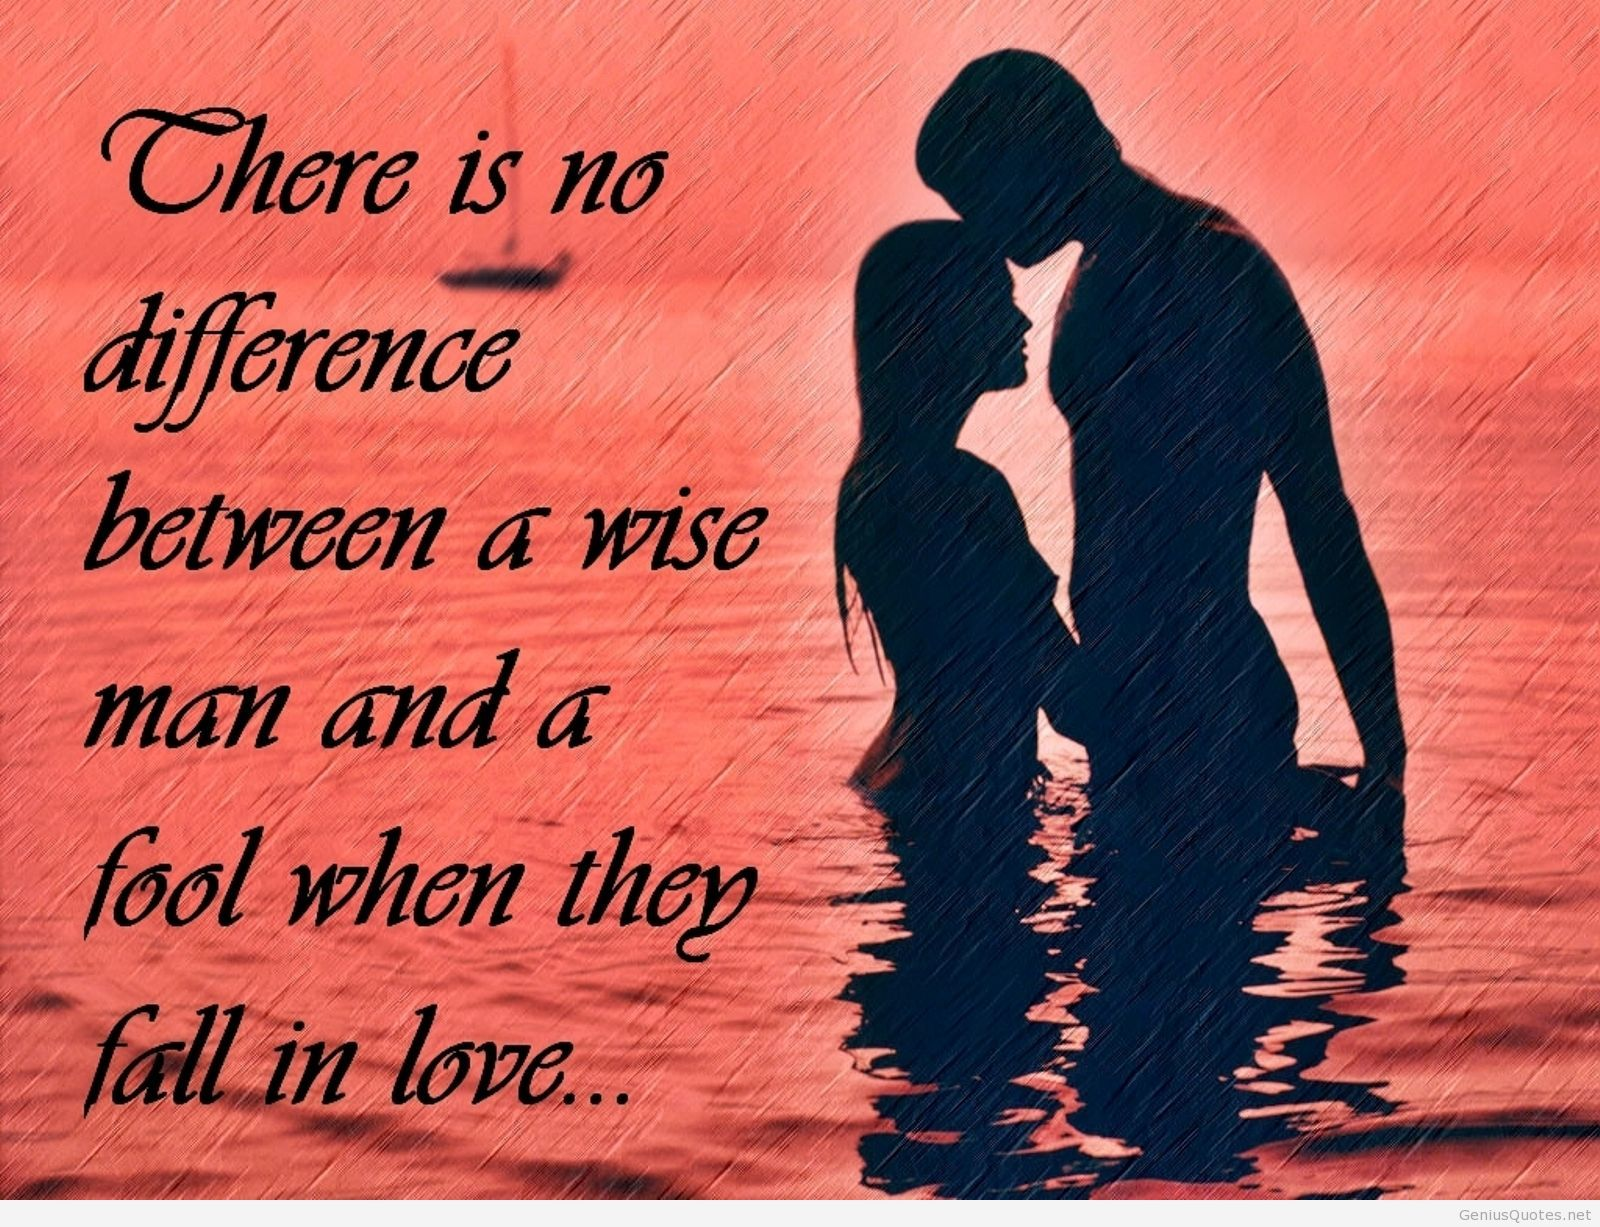 Quotes On Love Wallpapers Download